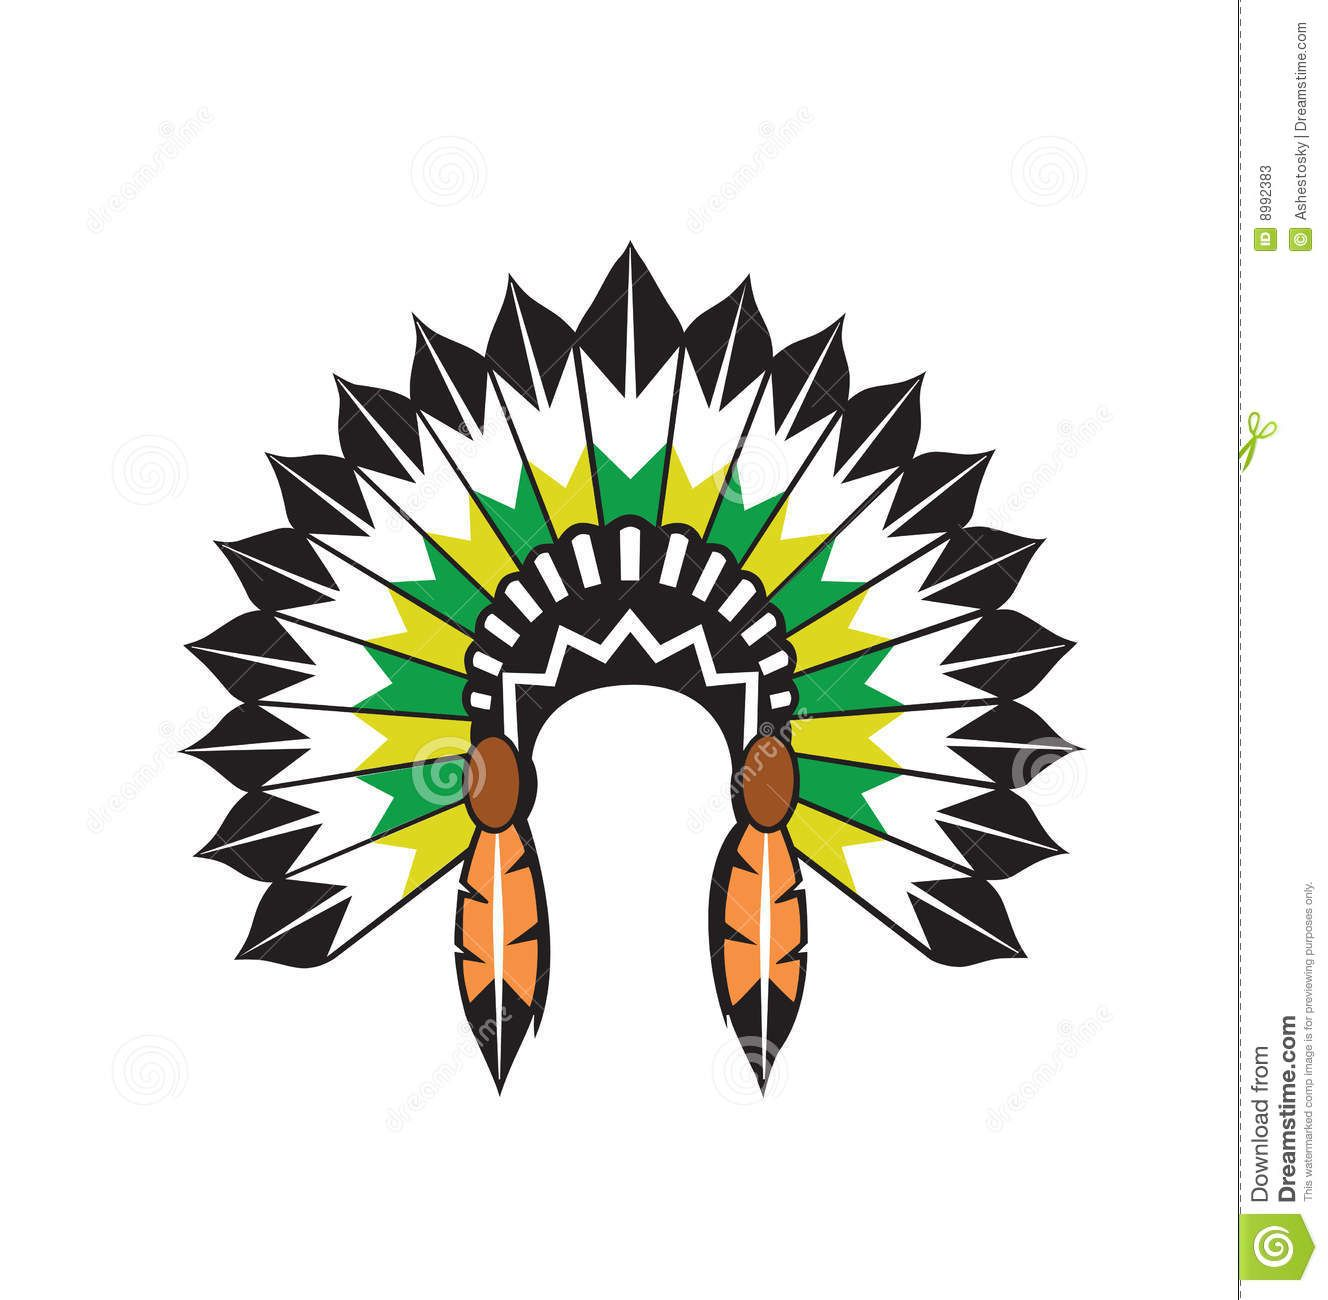 headdress clipart vectored illustration of original native indian rh pinterest co uk Indian Headdress Drawing Simple Indian Headdress Clip Art